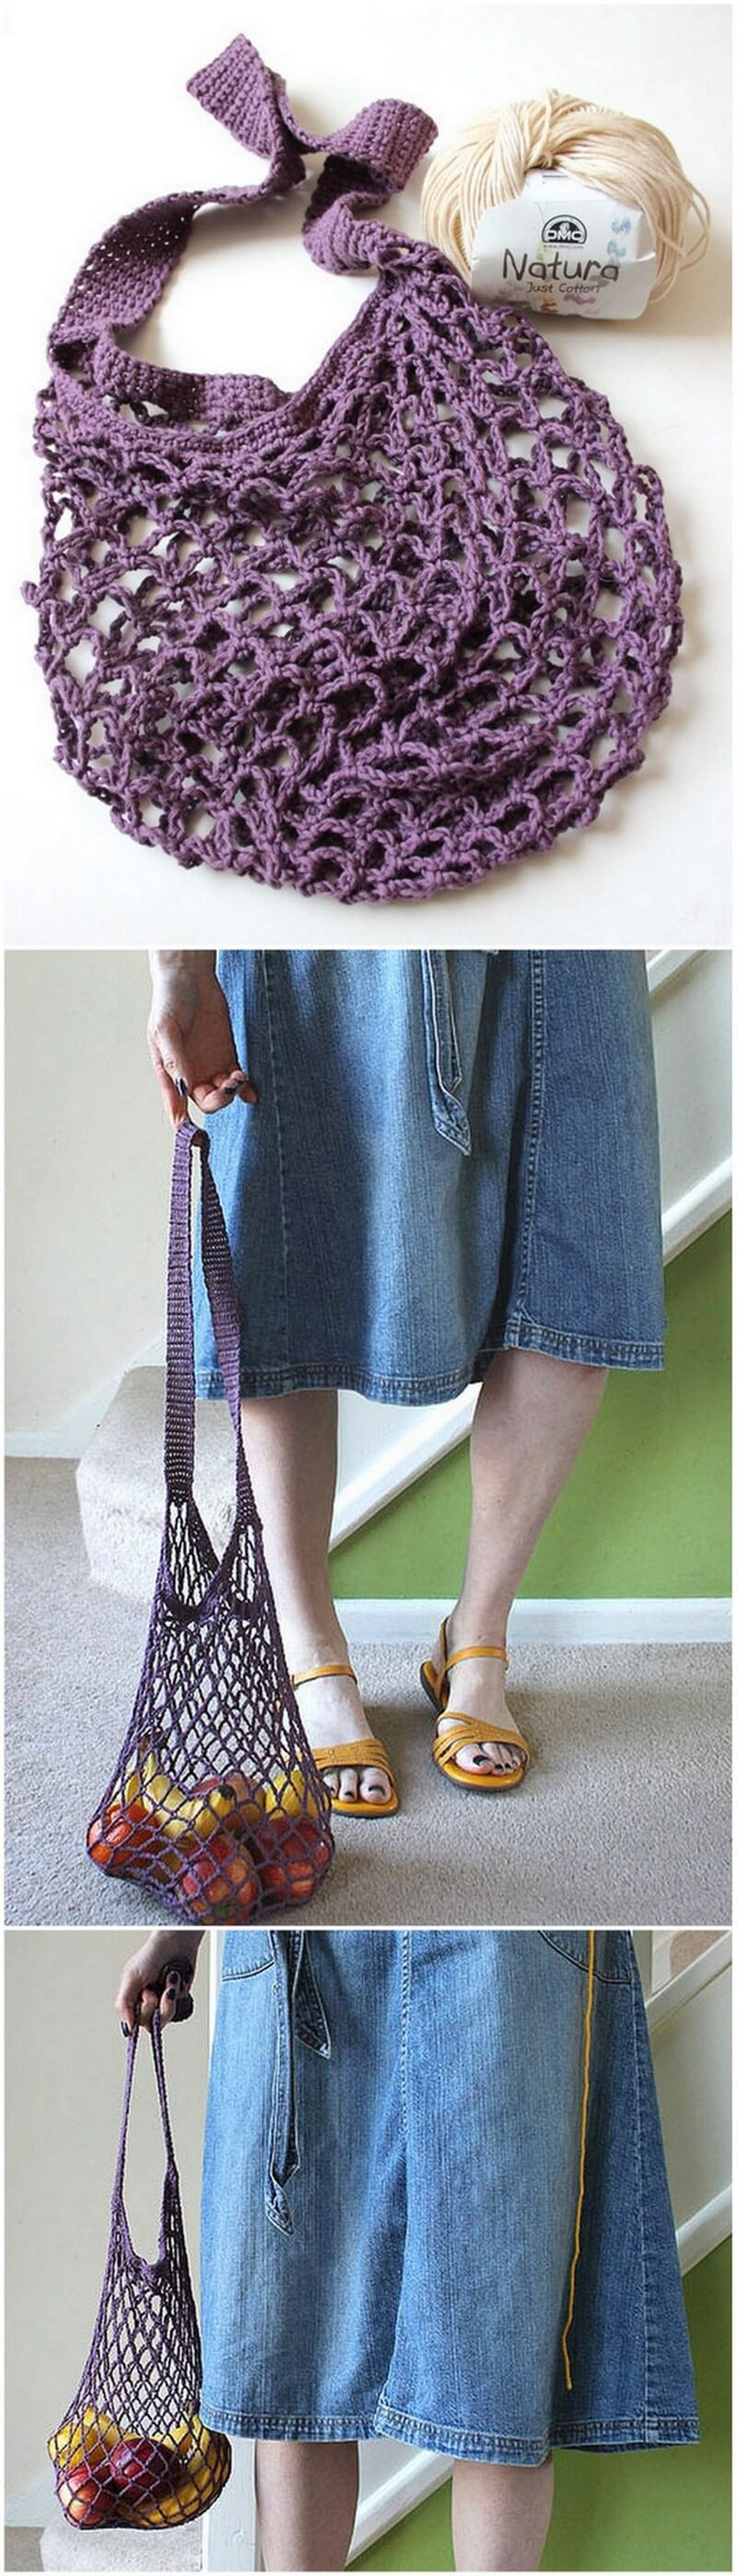 Crochet Bag Pattern (34)